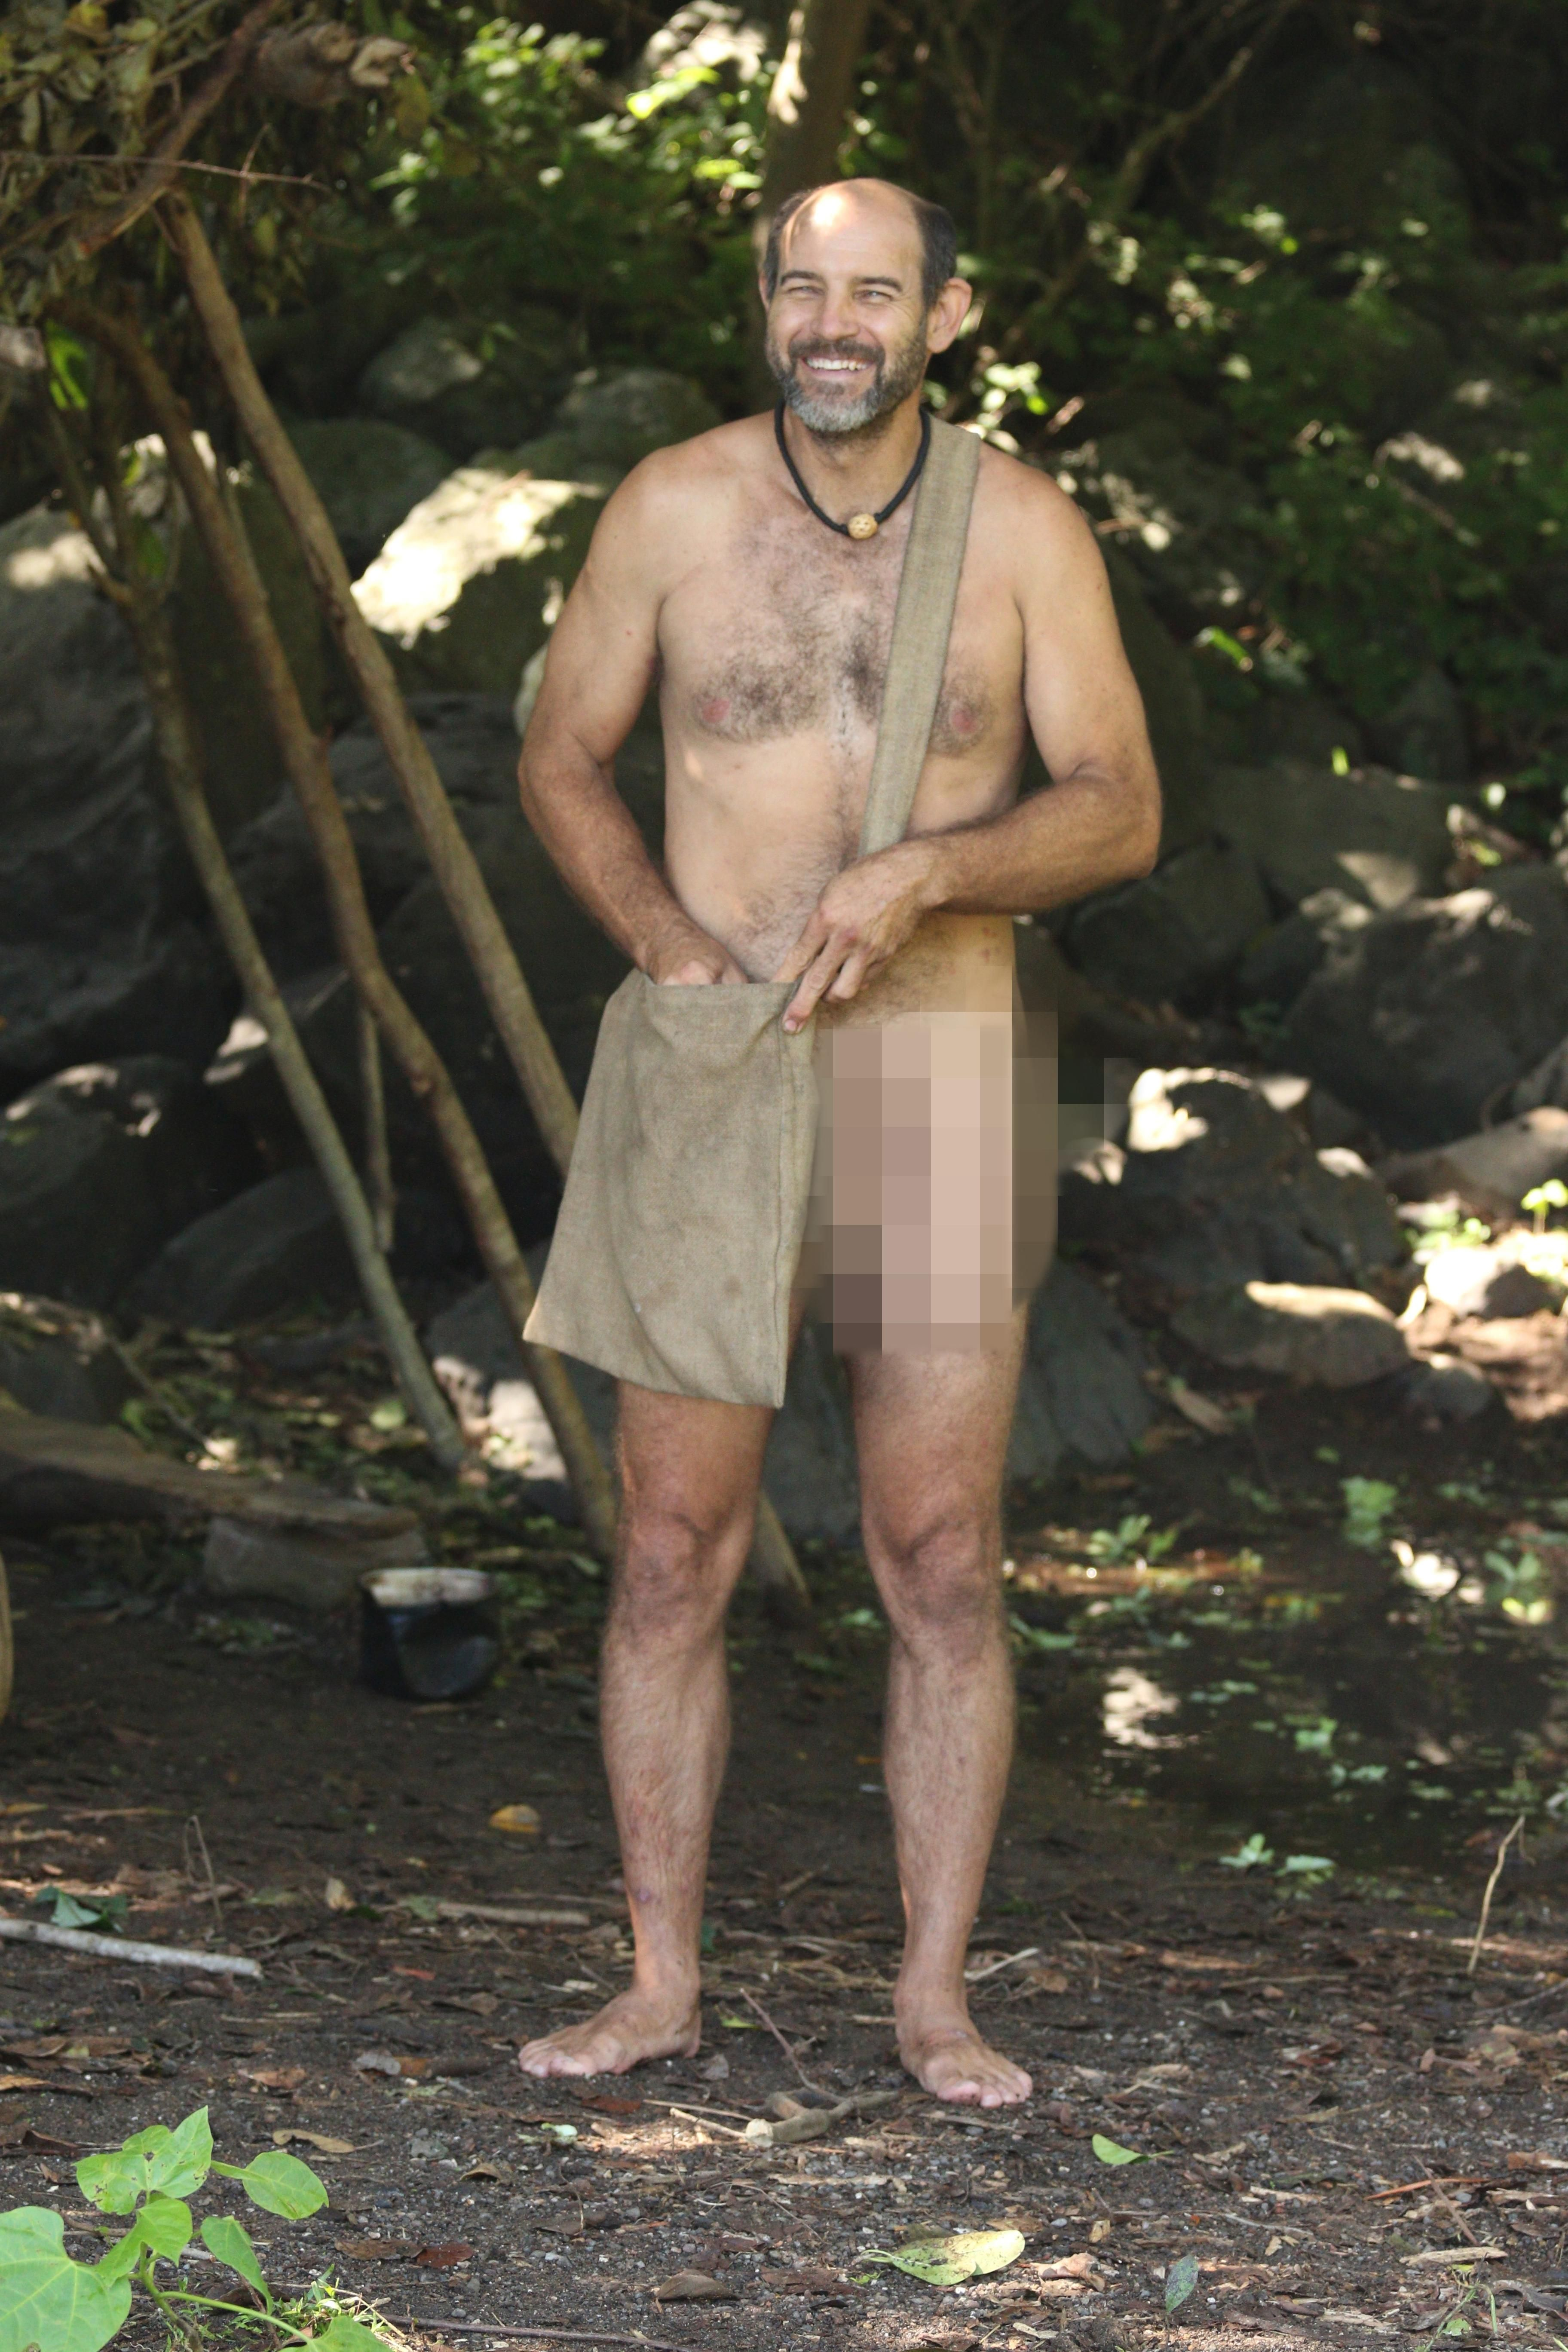 James Lewis Naked  Afraid Wilderness Silver Hunk  Hunks -4301